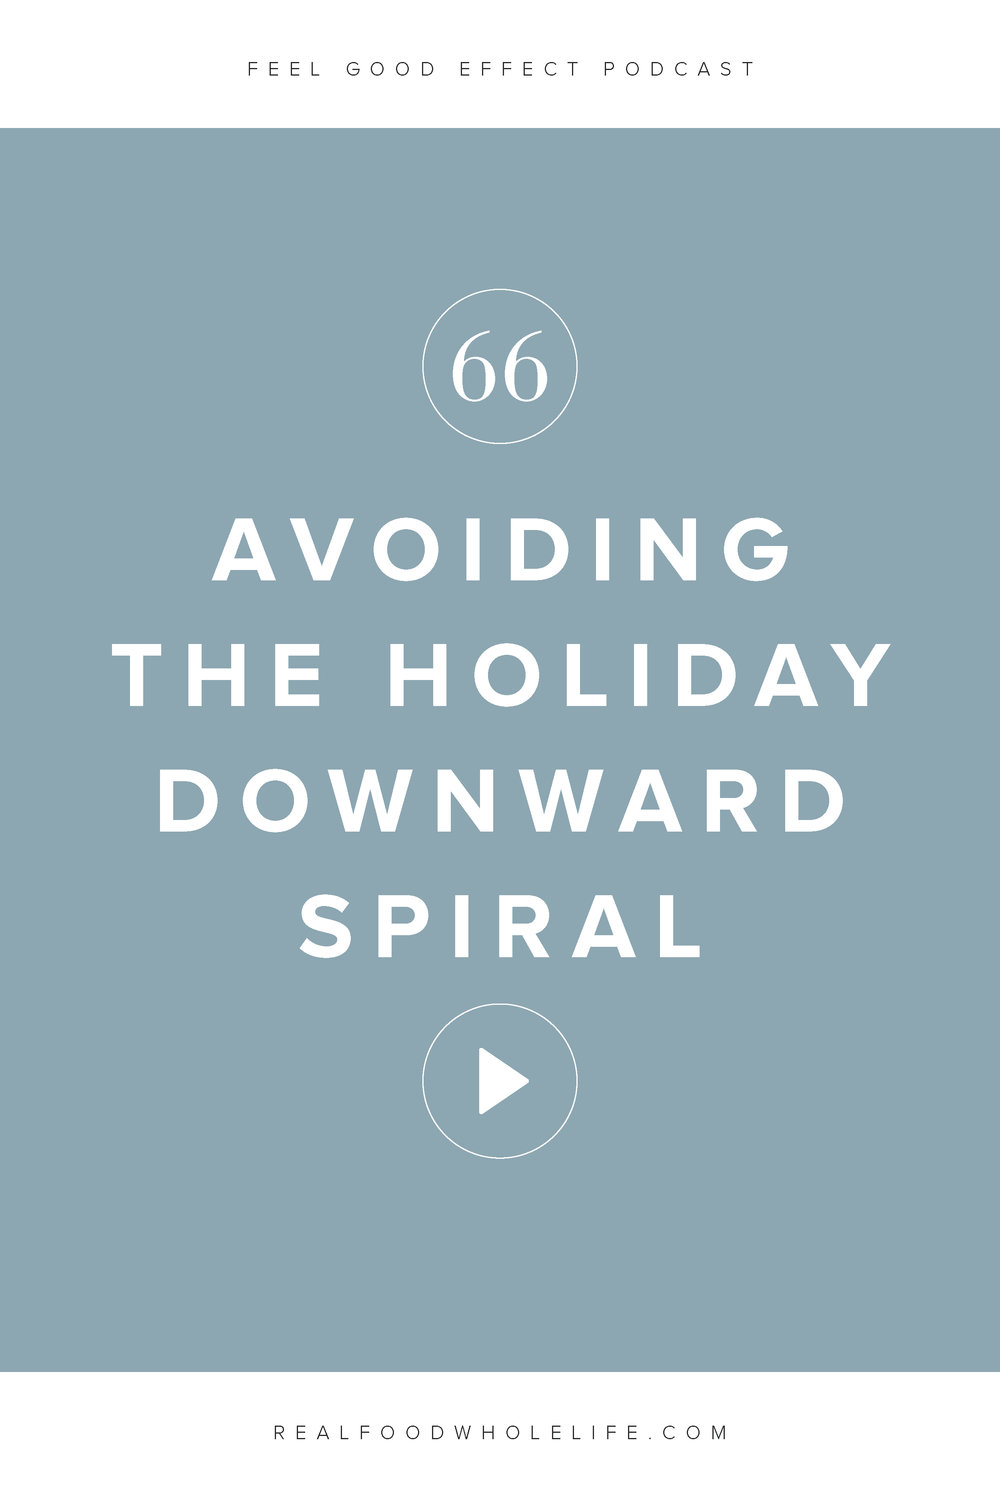 How to Avoid the Holiday Downward Spiral & Cultivate an Intentional Season Instead, a podcast episode from the Feel Good Effect. Instead of getting stuck in the holiday spiral this year, use this time to ditch perfection, comparison, and overwhelm. #feelgoodeffect #podcast #wellness #holidaystress #selfcare #intentional #gentleisthenewperfect